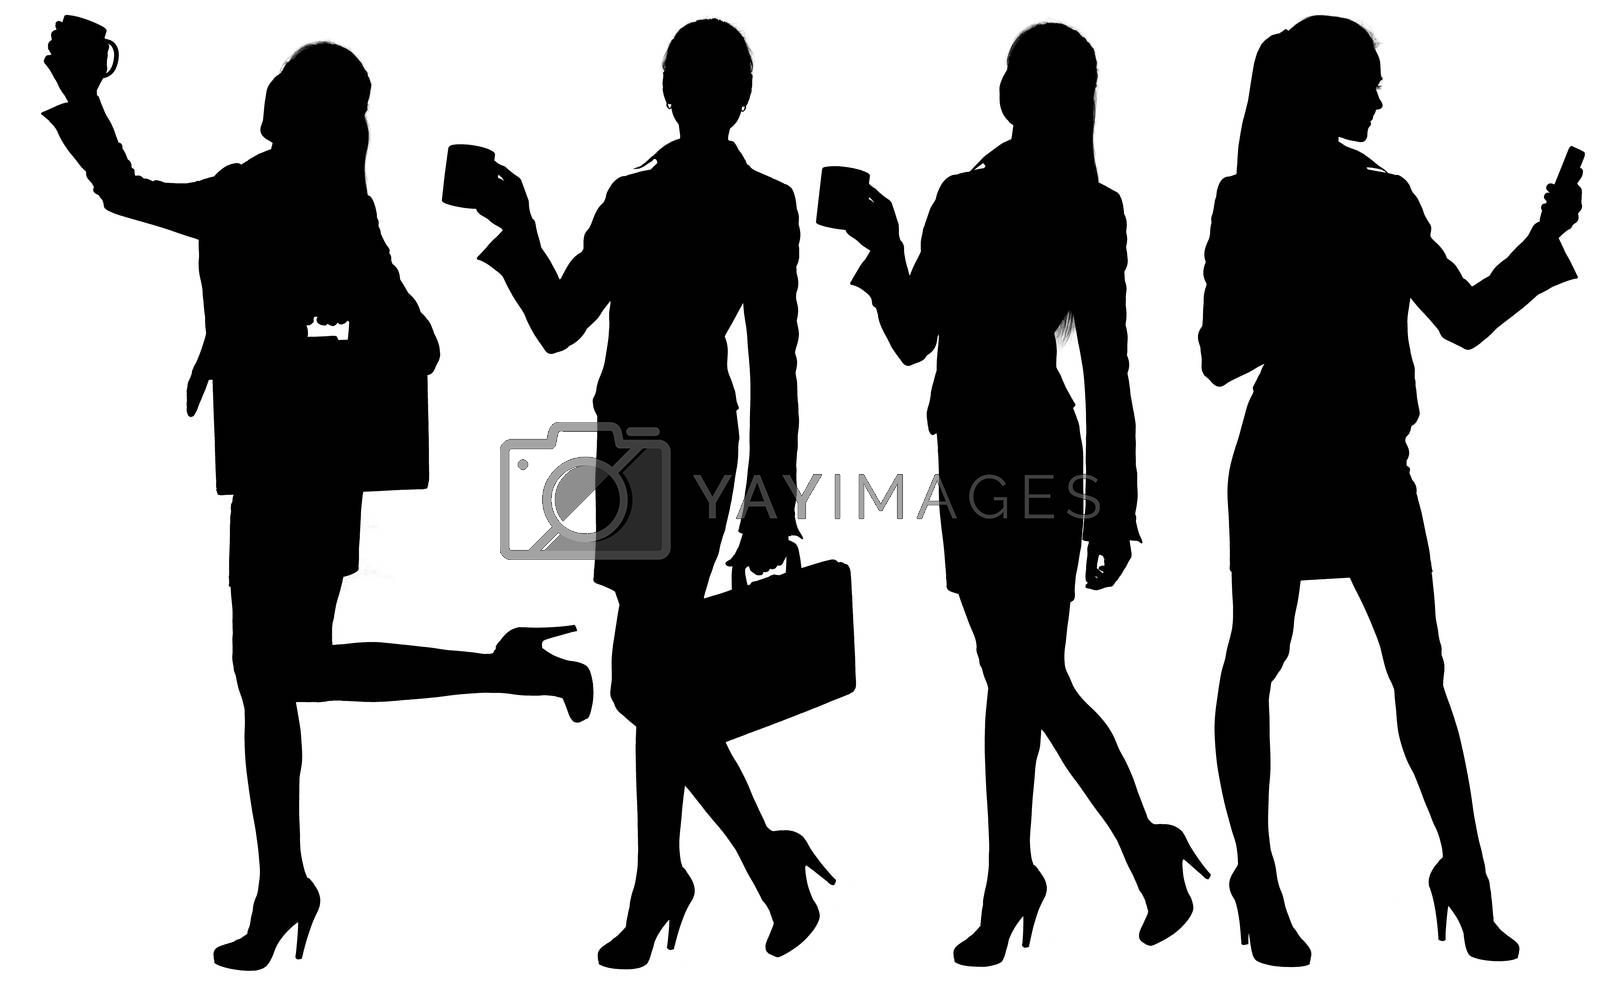 Business woman silhouette with briefcase and mug. Isolated white background